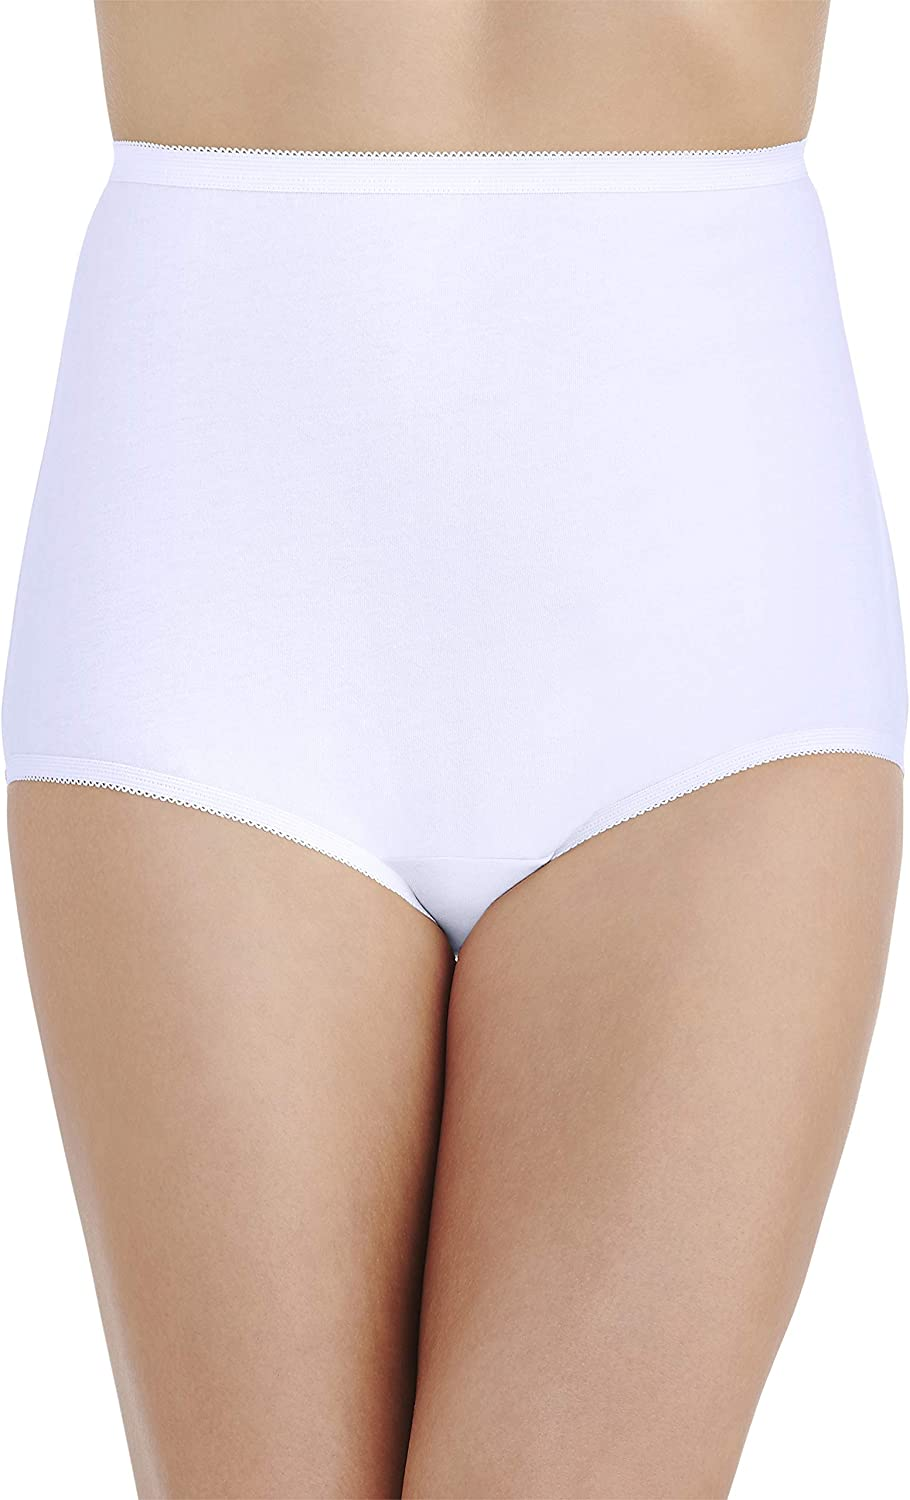 Vanity Fair Women's Underwear Perfectly Yours Traditional Cotton Brief Panties at  Women's Clothing store